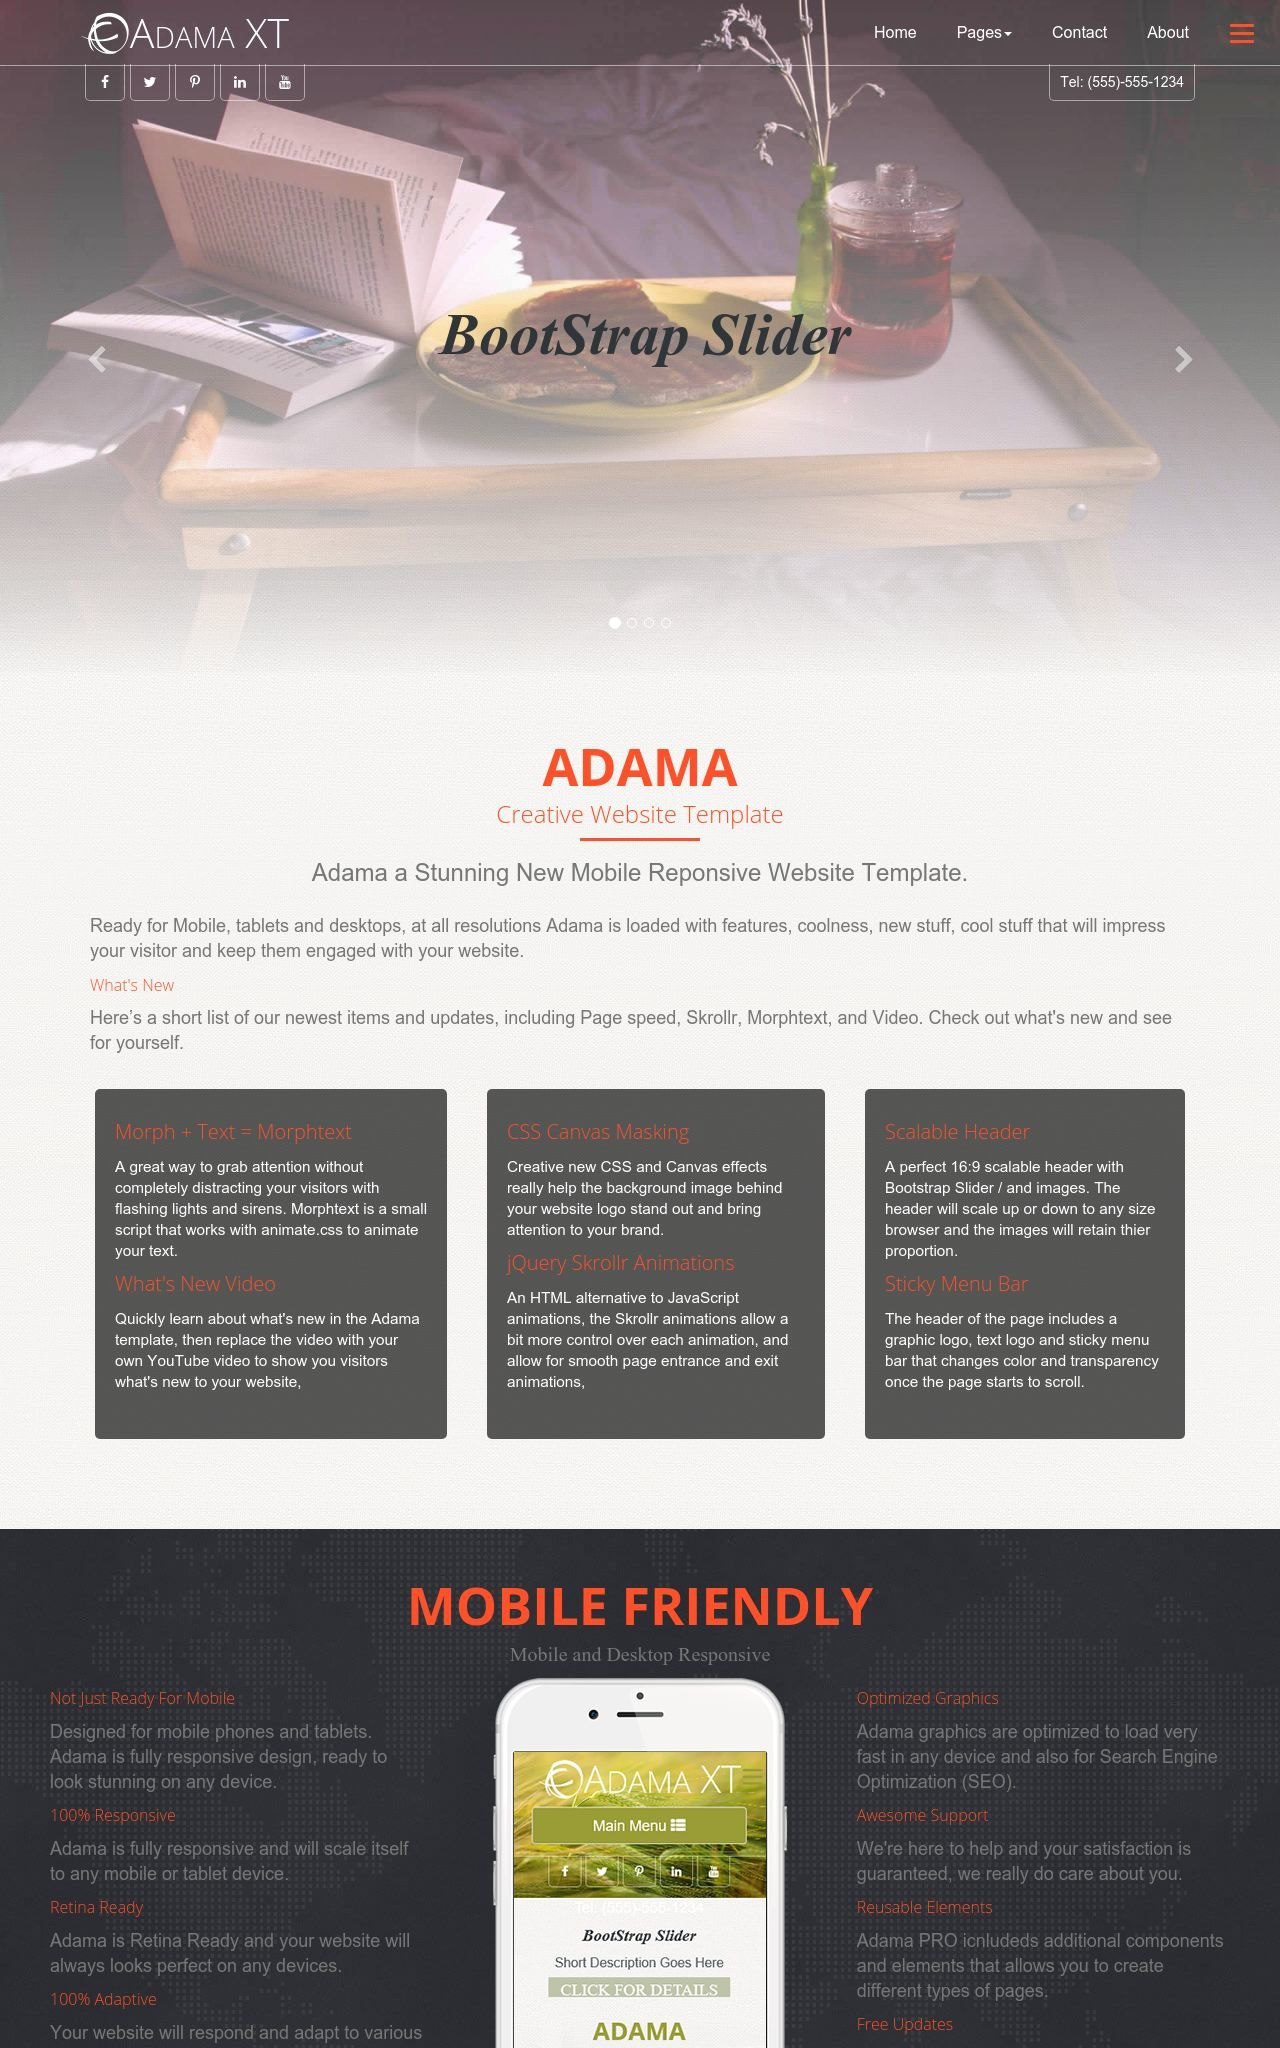 Bed-and-breakfast Web Templates